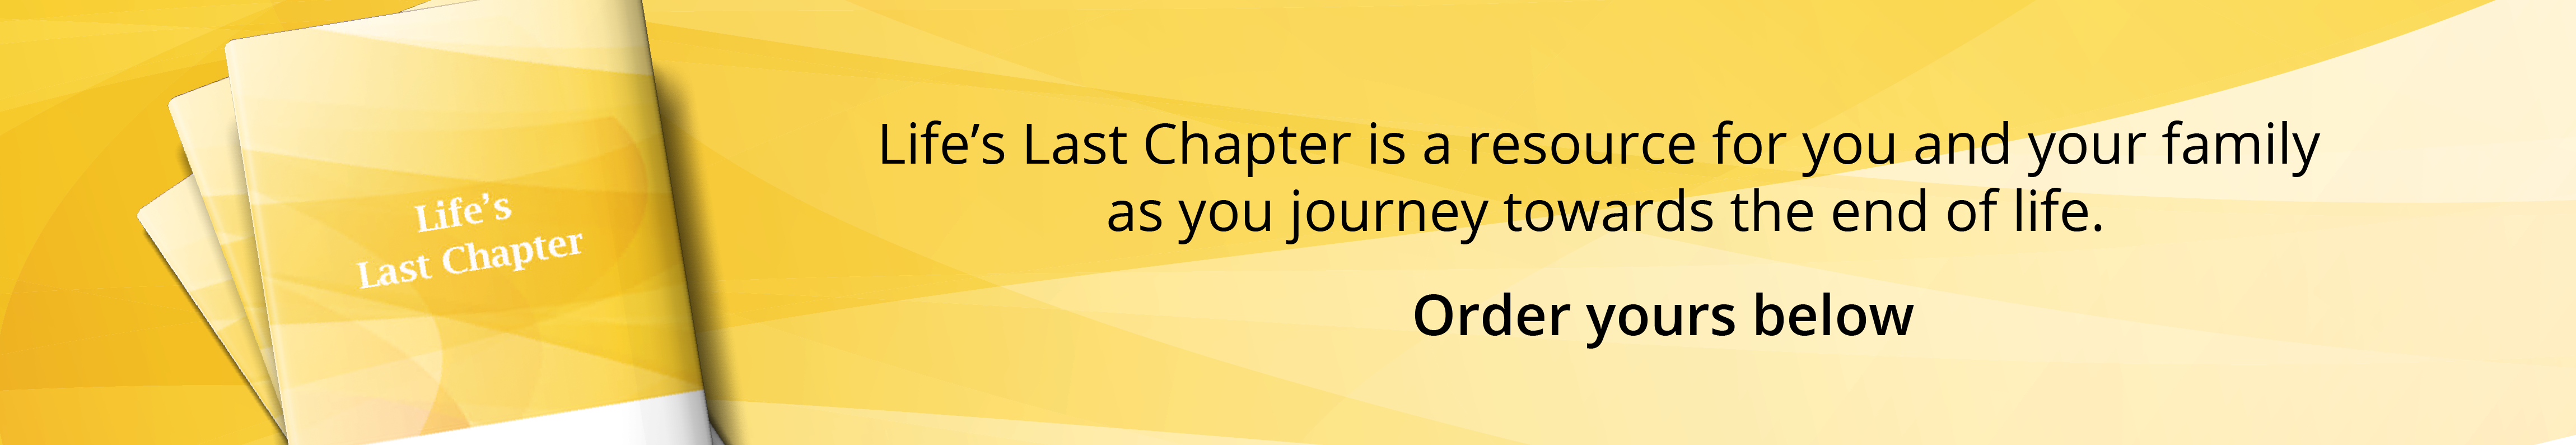 Life's Last Chapter Order Yours